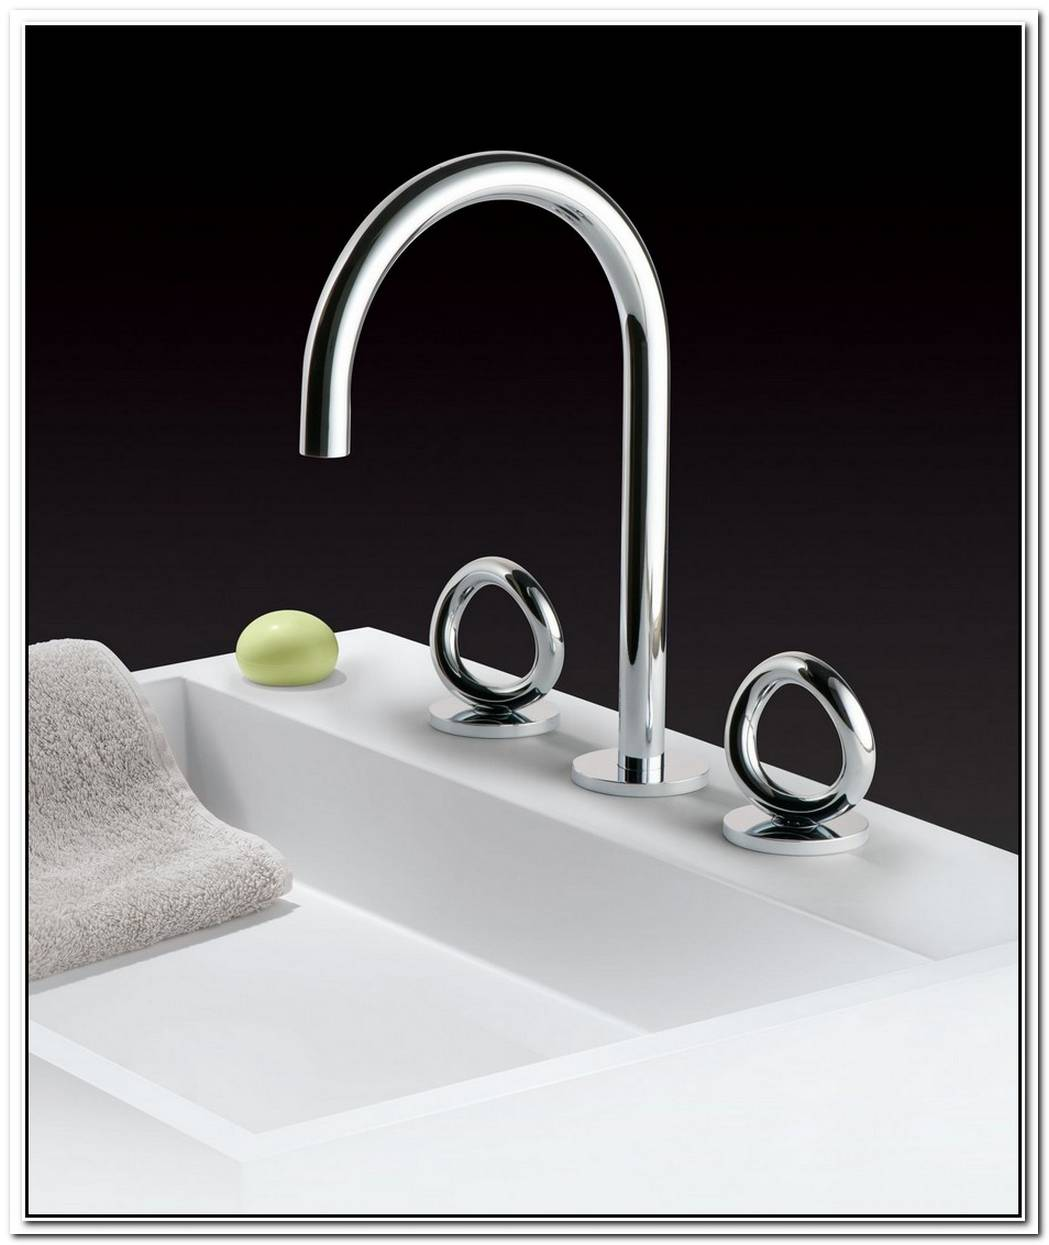 Modern Bathroom Faucets By Thg